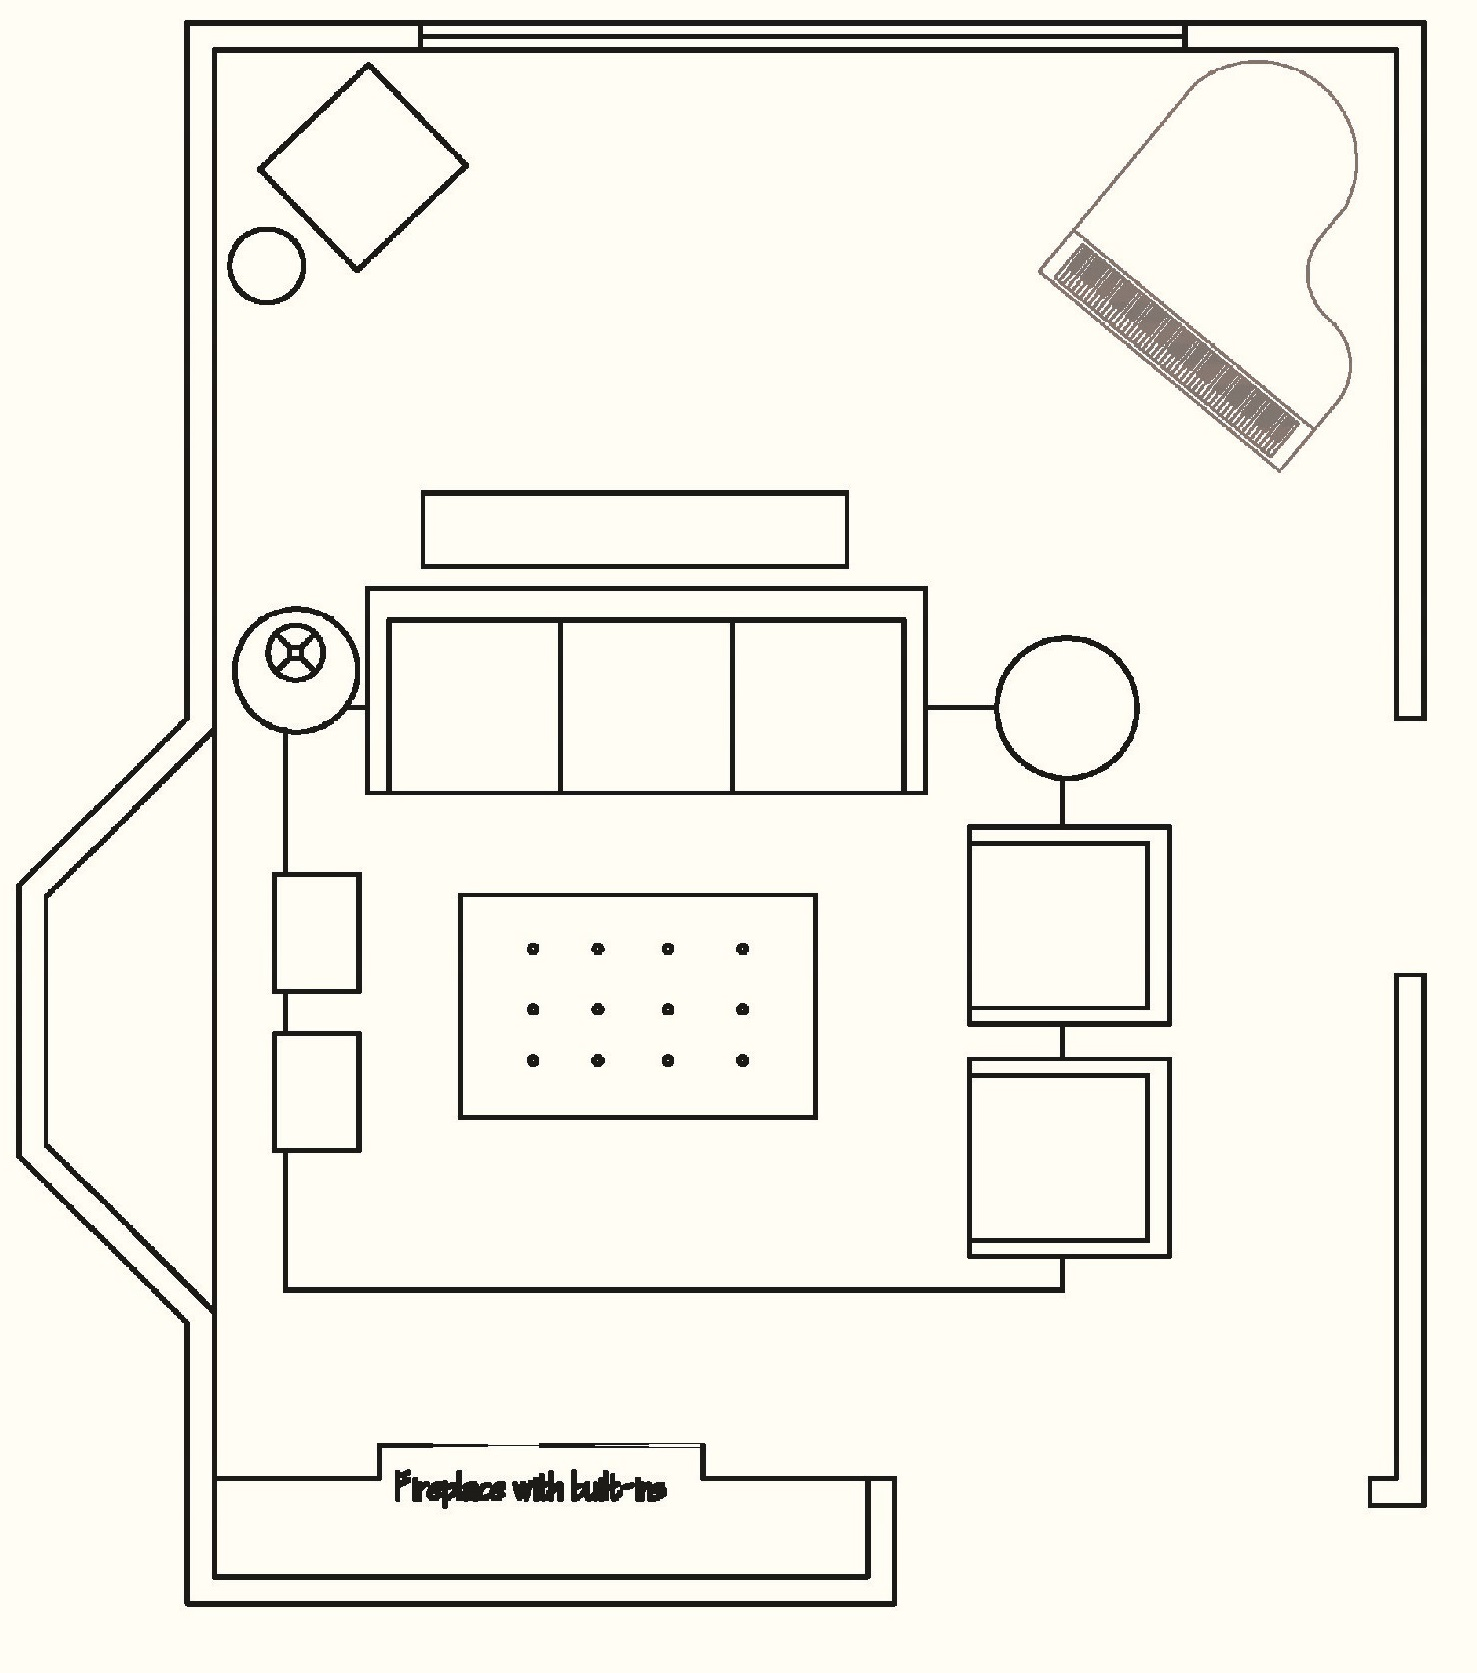 Lowe Family Room Concepts-page-0